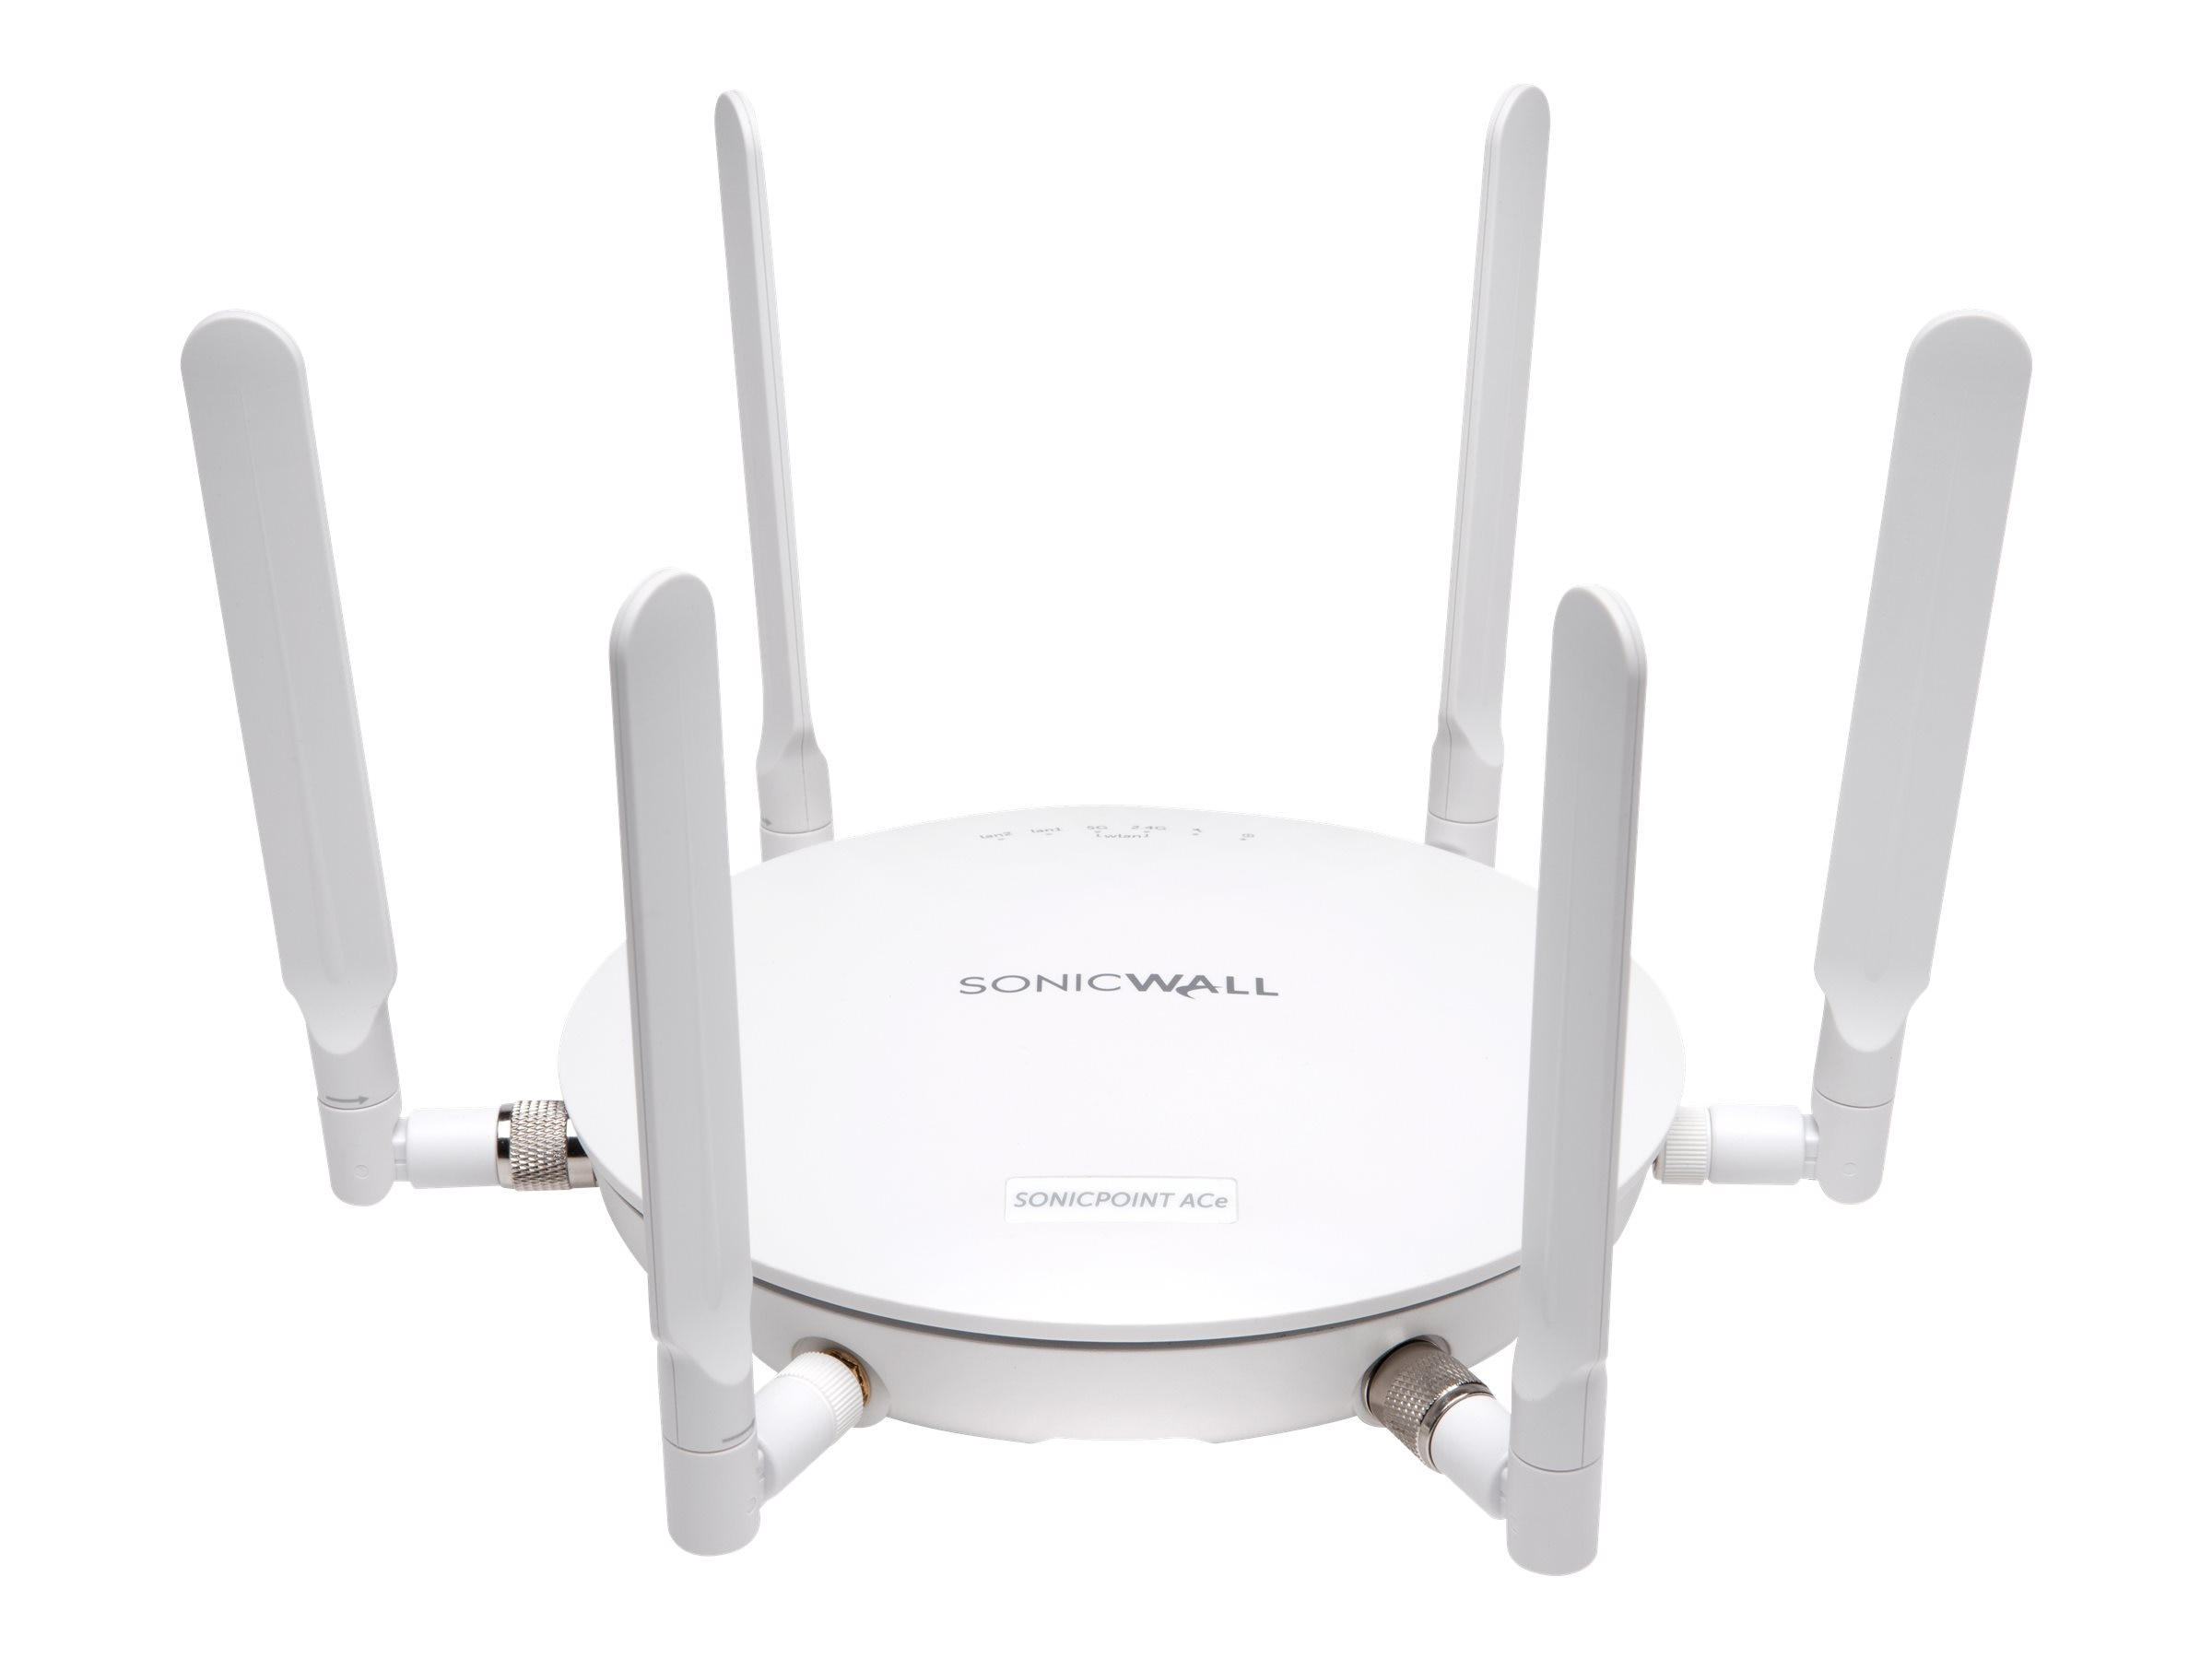 SonicWALL 4-Pack SonicPoint ACe w o POE Injector & 24x7 Support (3 Years)